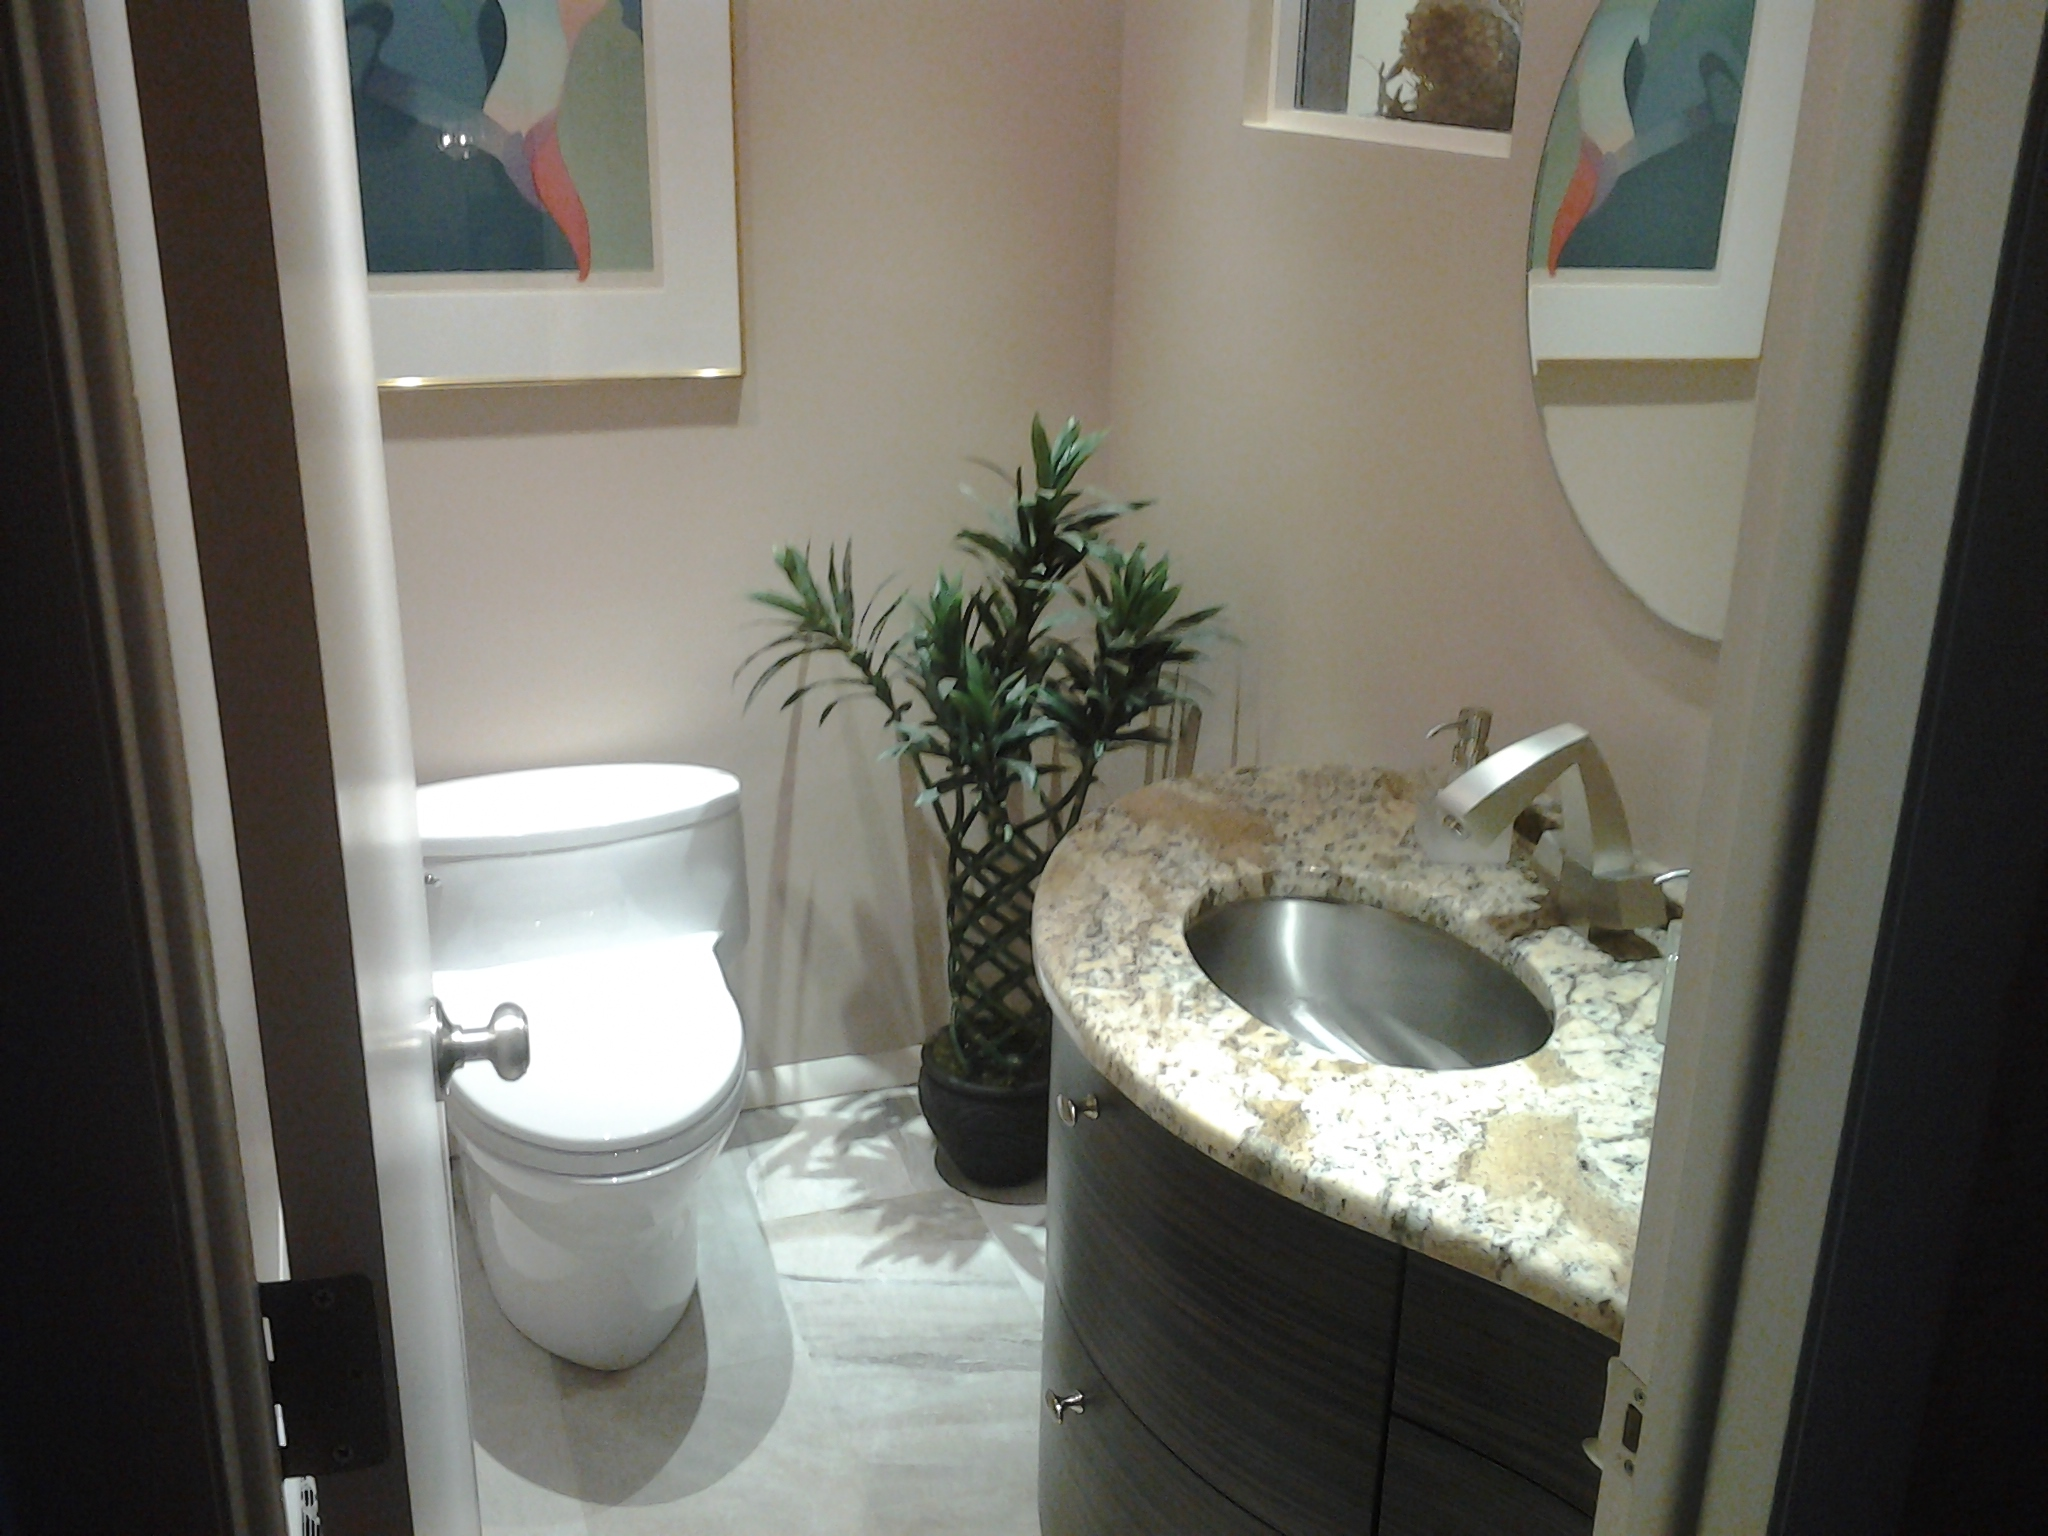 Essel remodeling akron oh read reviews get a free Bathroom remodeling akron ohio